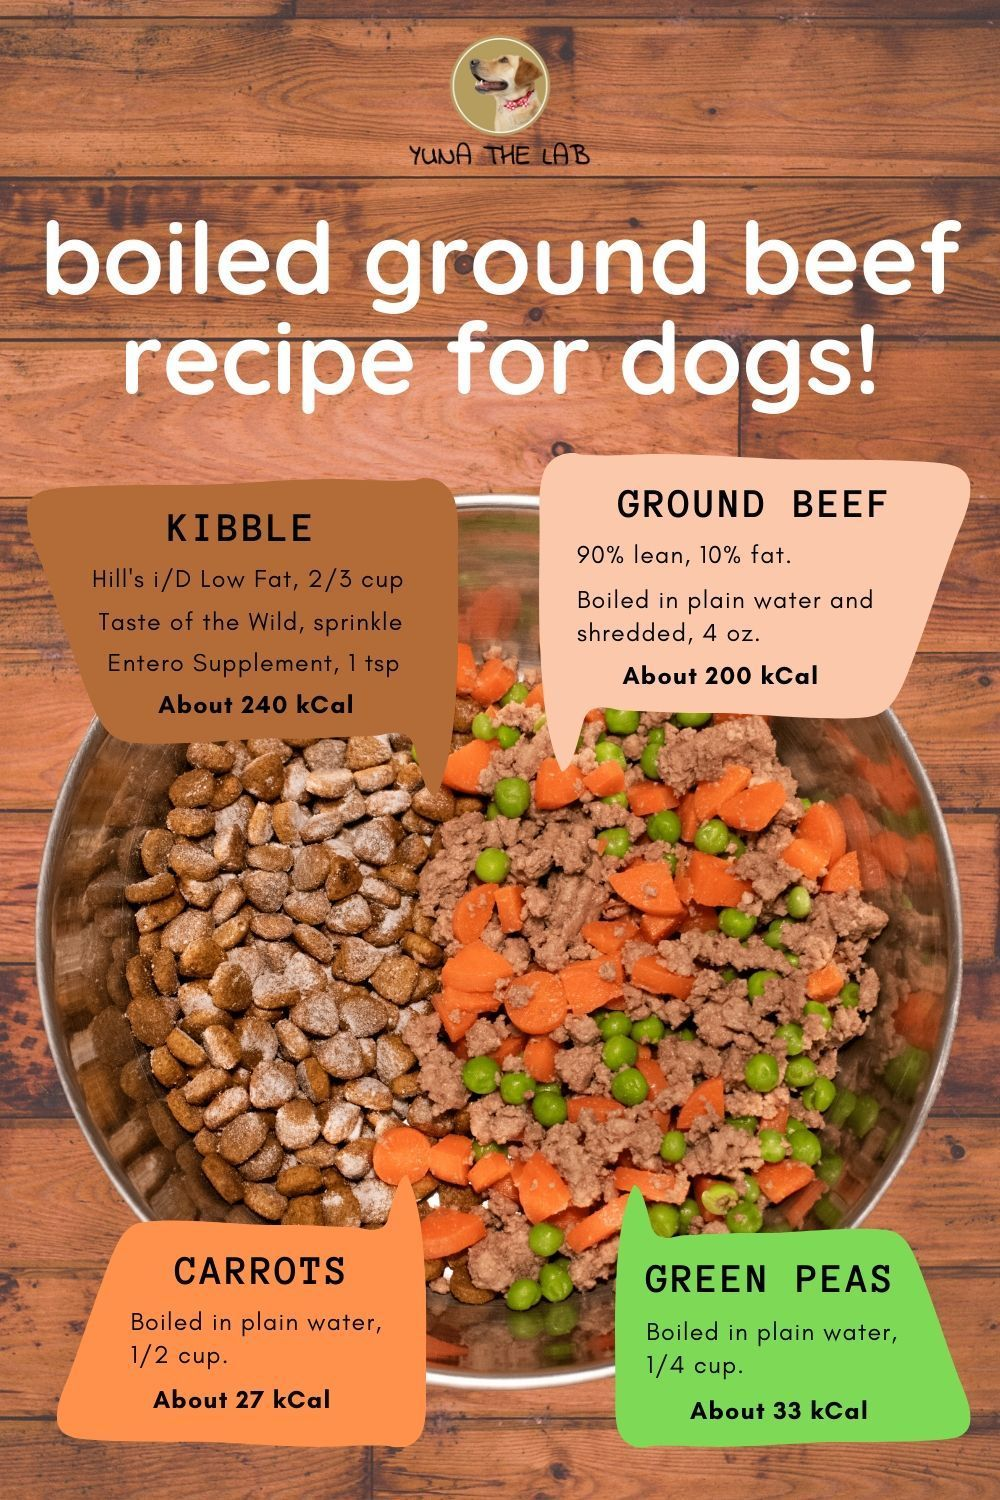 Boiled Ground Beef For Dogs Recipe (With Carrots And Peas!)